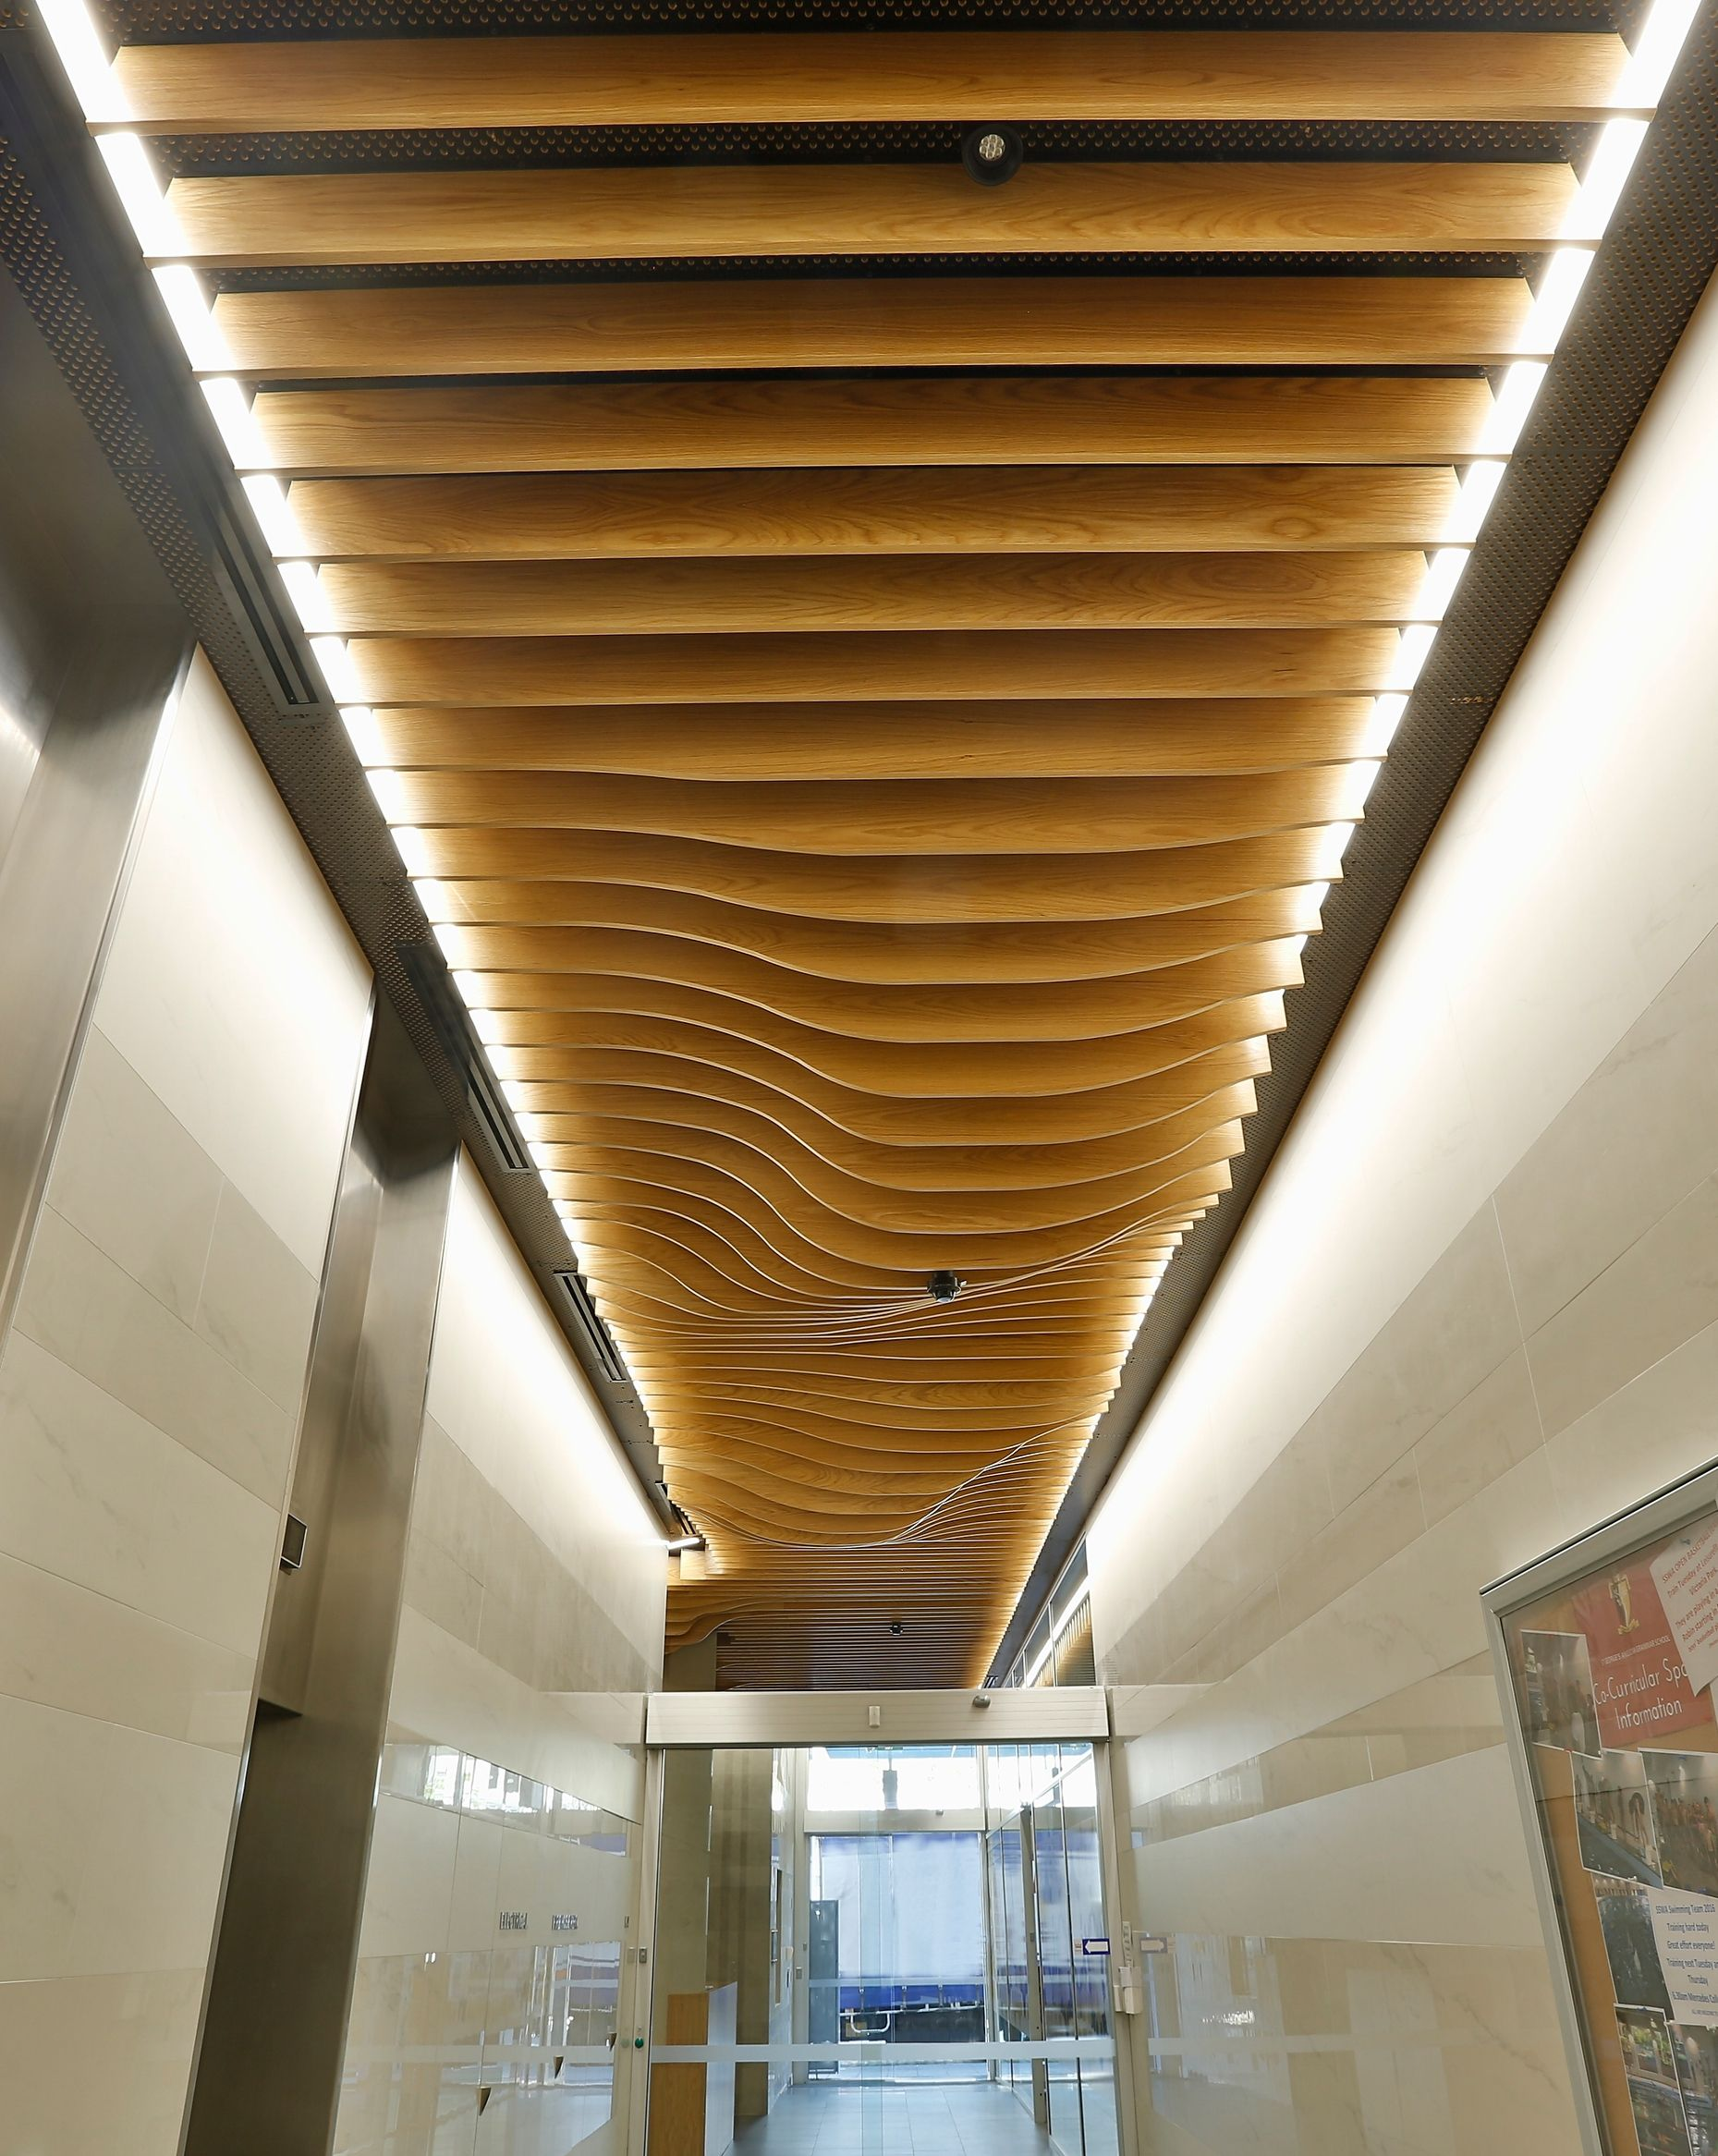 Supawood S New Product Wave Blades Used For The Ceiling Of